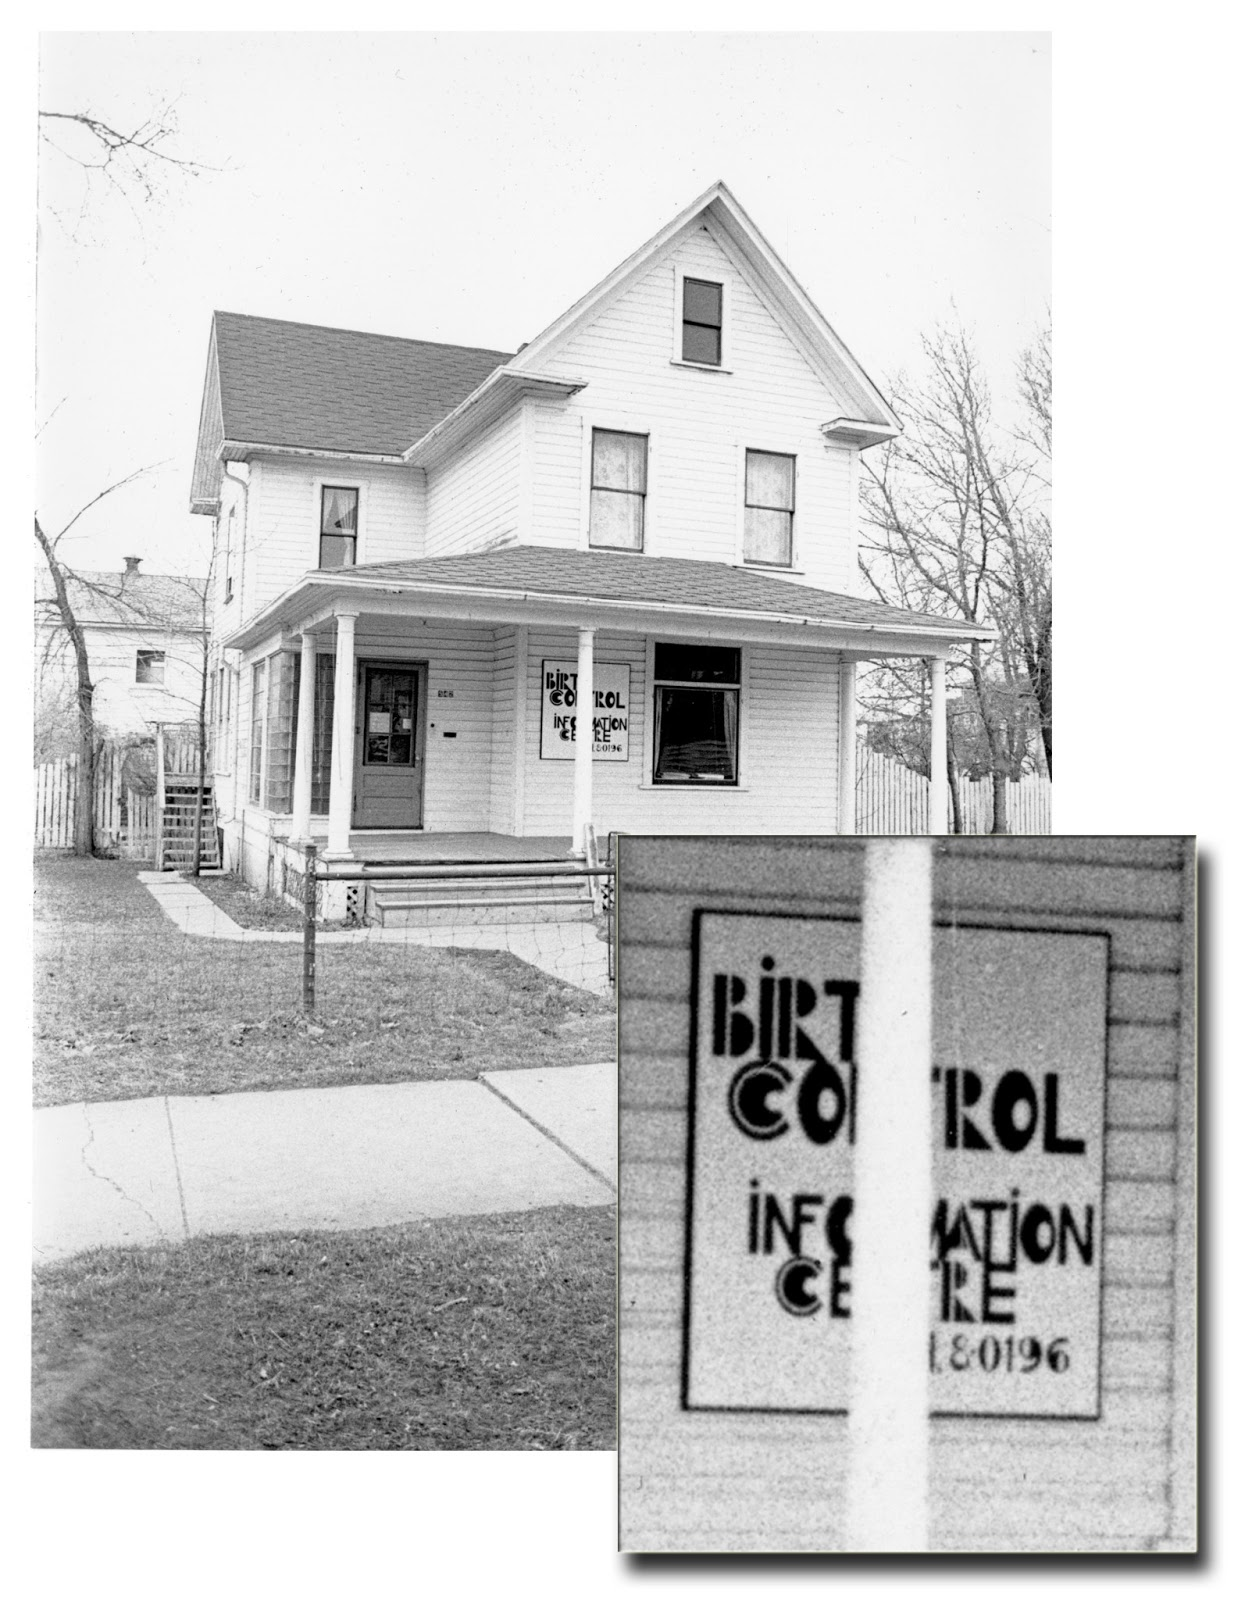 The Lethbridge Birth Control and Information Centre (LBCIC), 1974.   Courtesy the Galt Museum & Archives: 19901067001